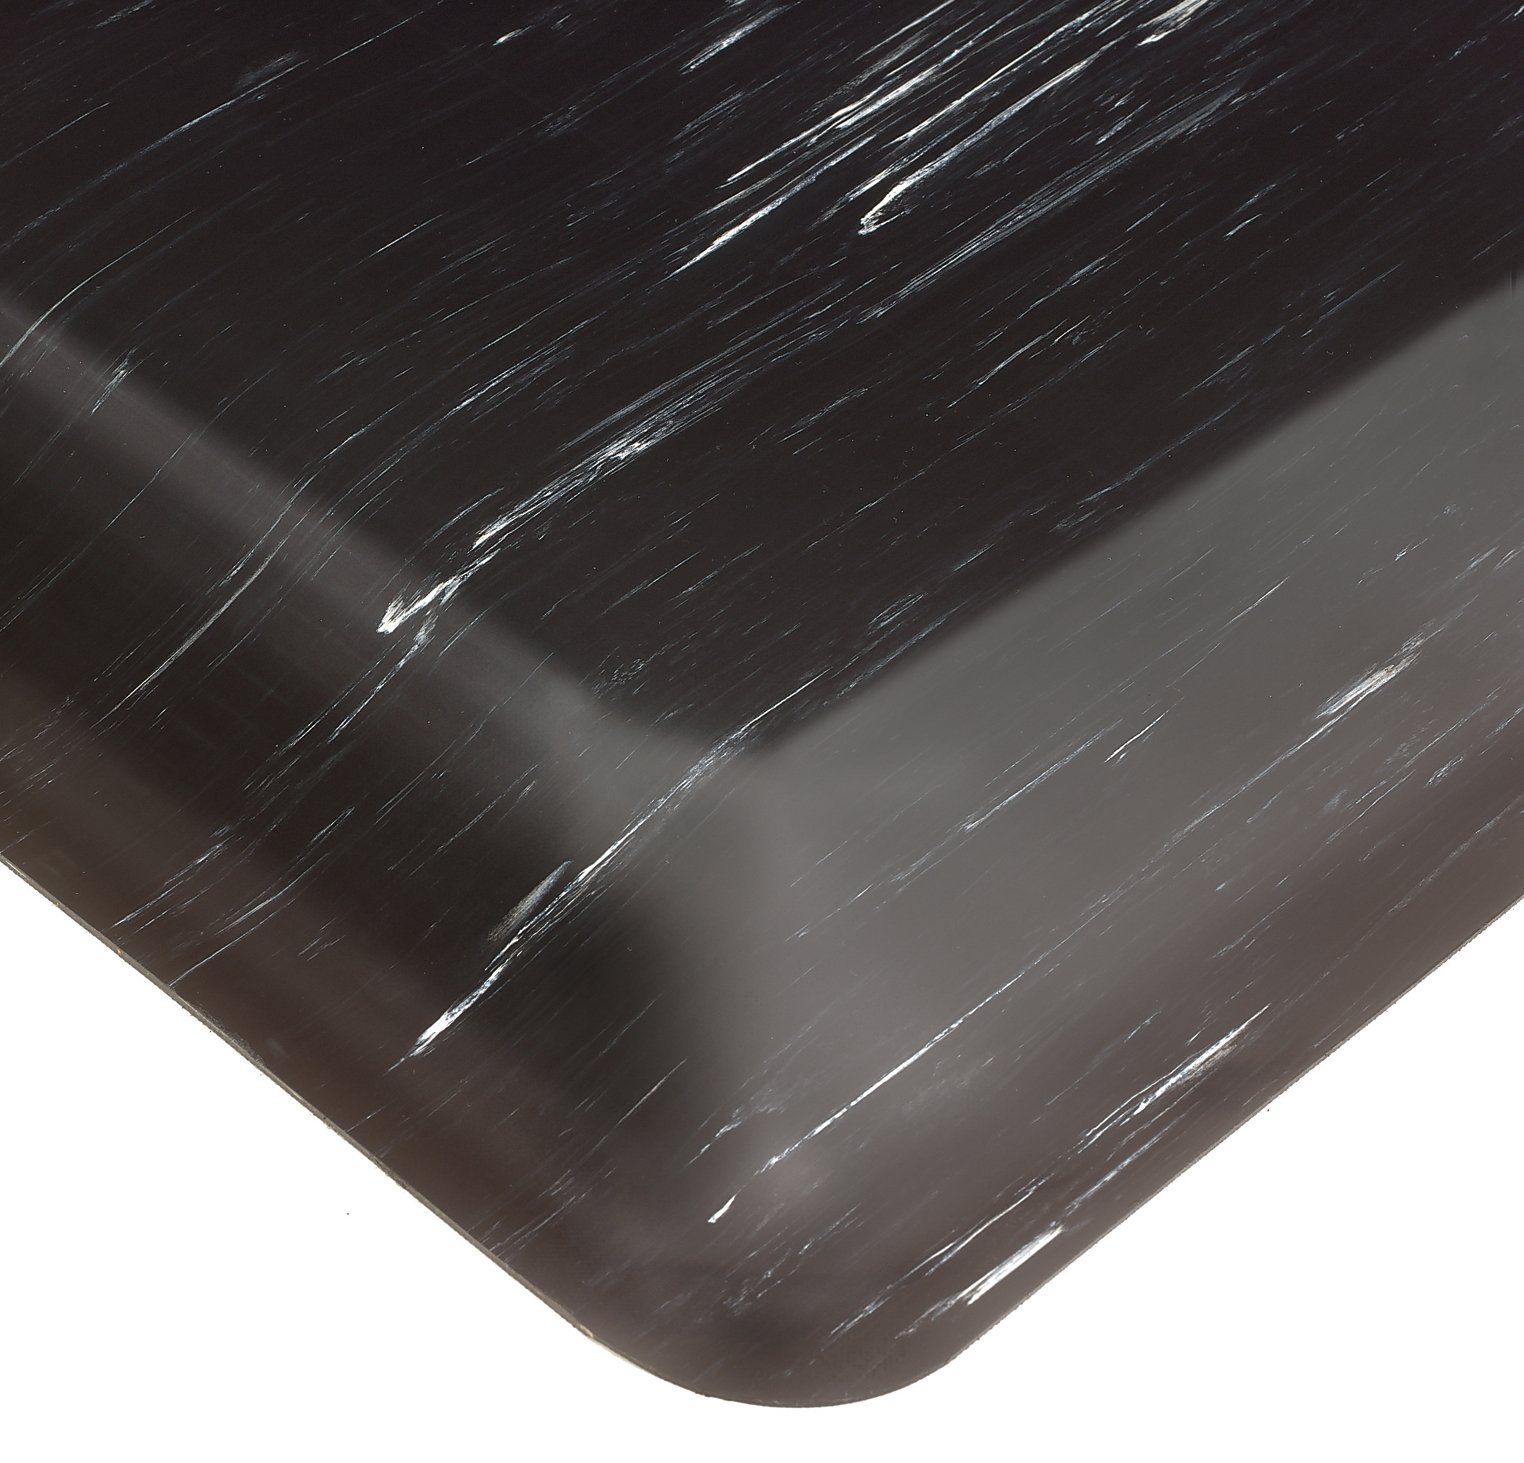 Wearwell PVC 420 SpongeCote Tile-Top Anti-Microbial Mat, Safety Beveled Edges, for Dry Areas, 2' Width x 3' Length x 1/2'' Thickness, Black